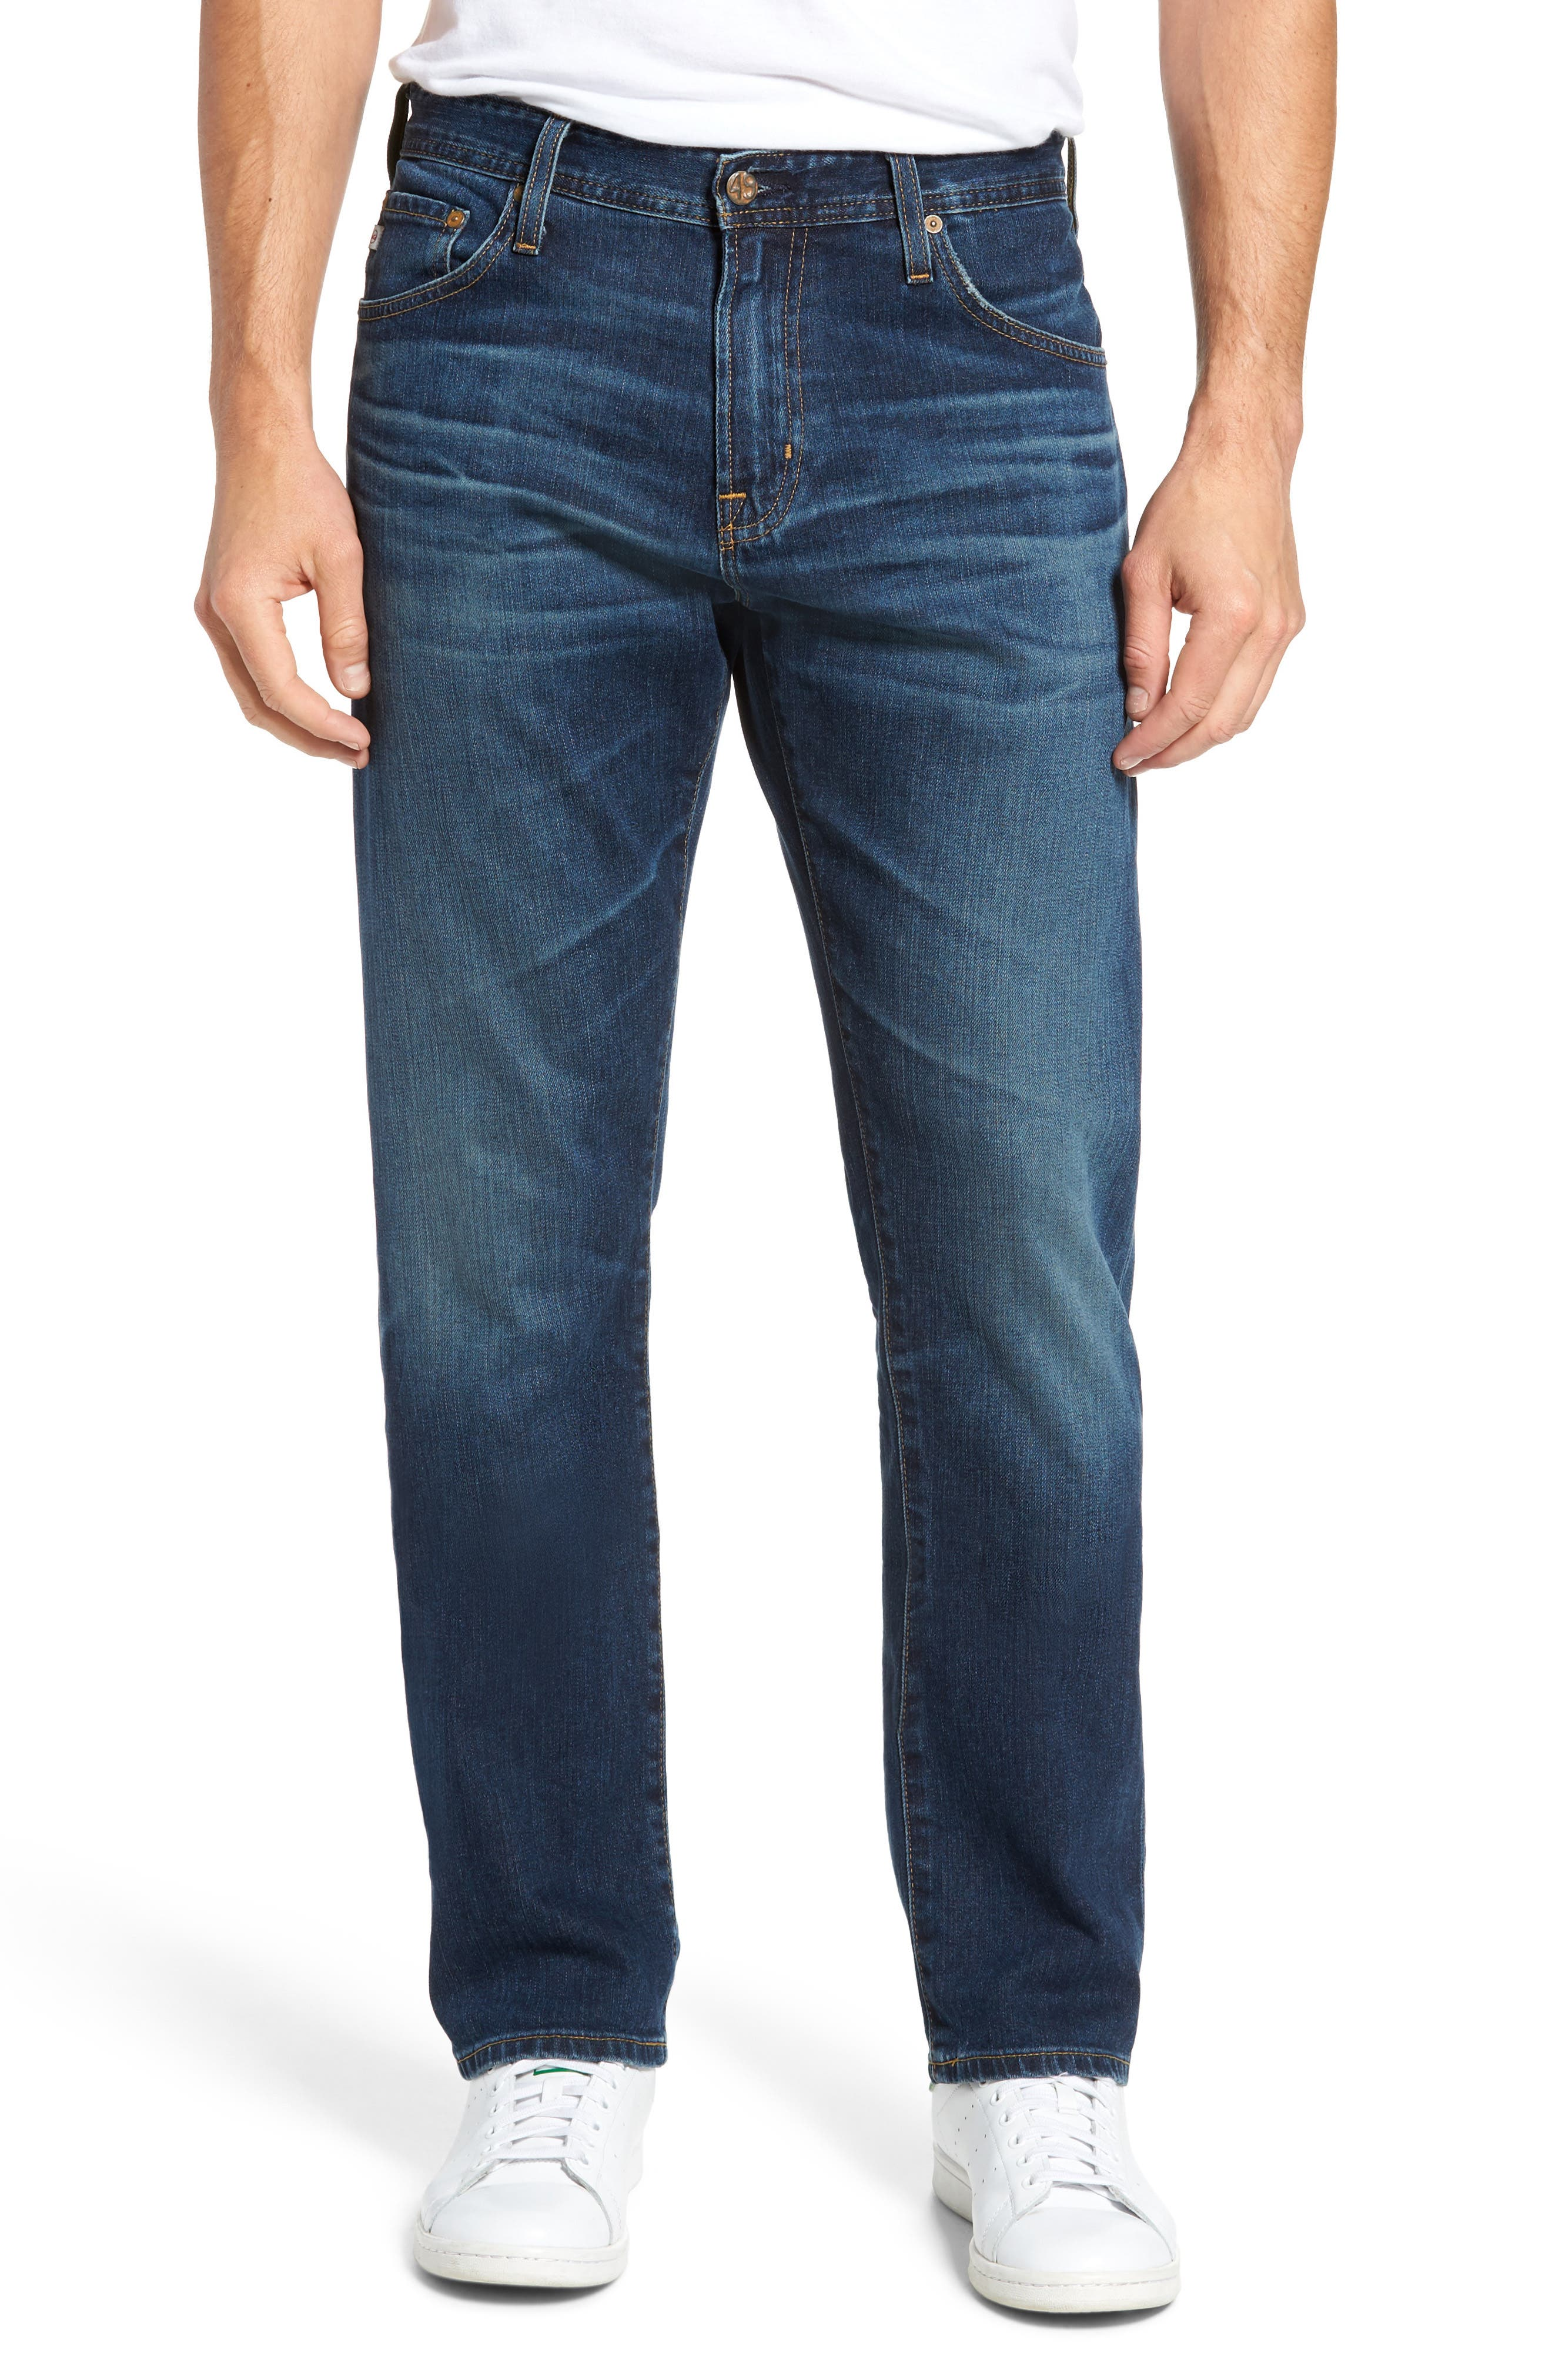 Ives Straight Leg Jeans,                             Main thumbnail 1, color,                             9 Years Hammer